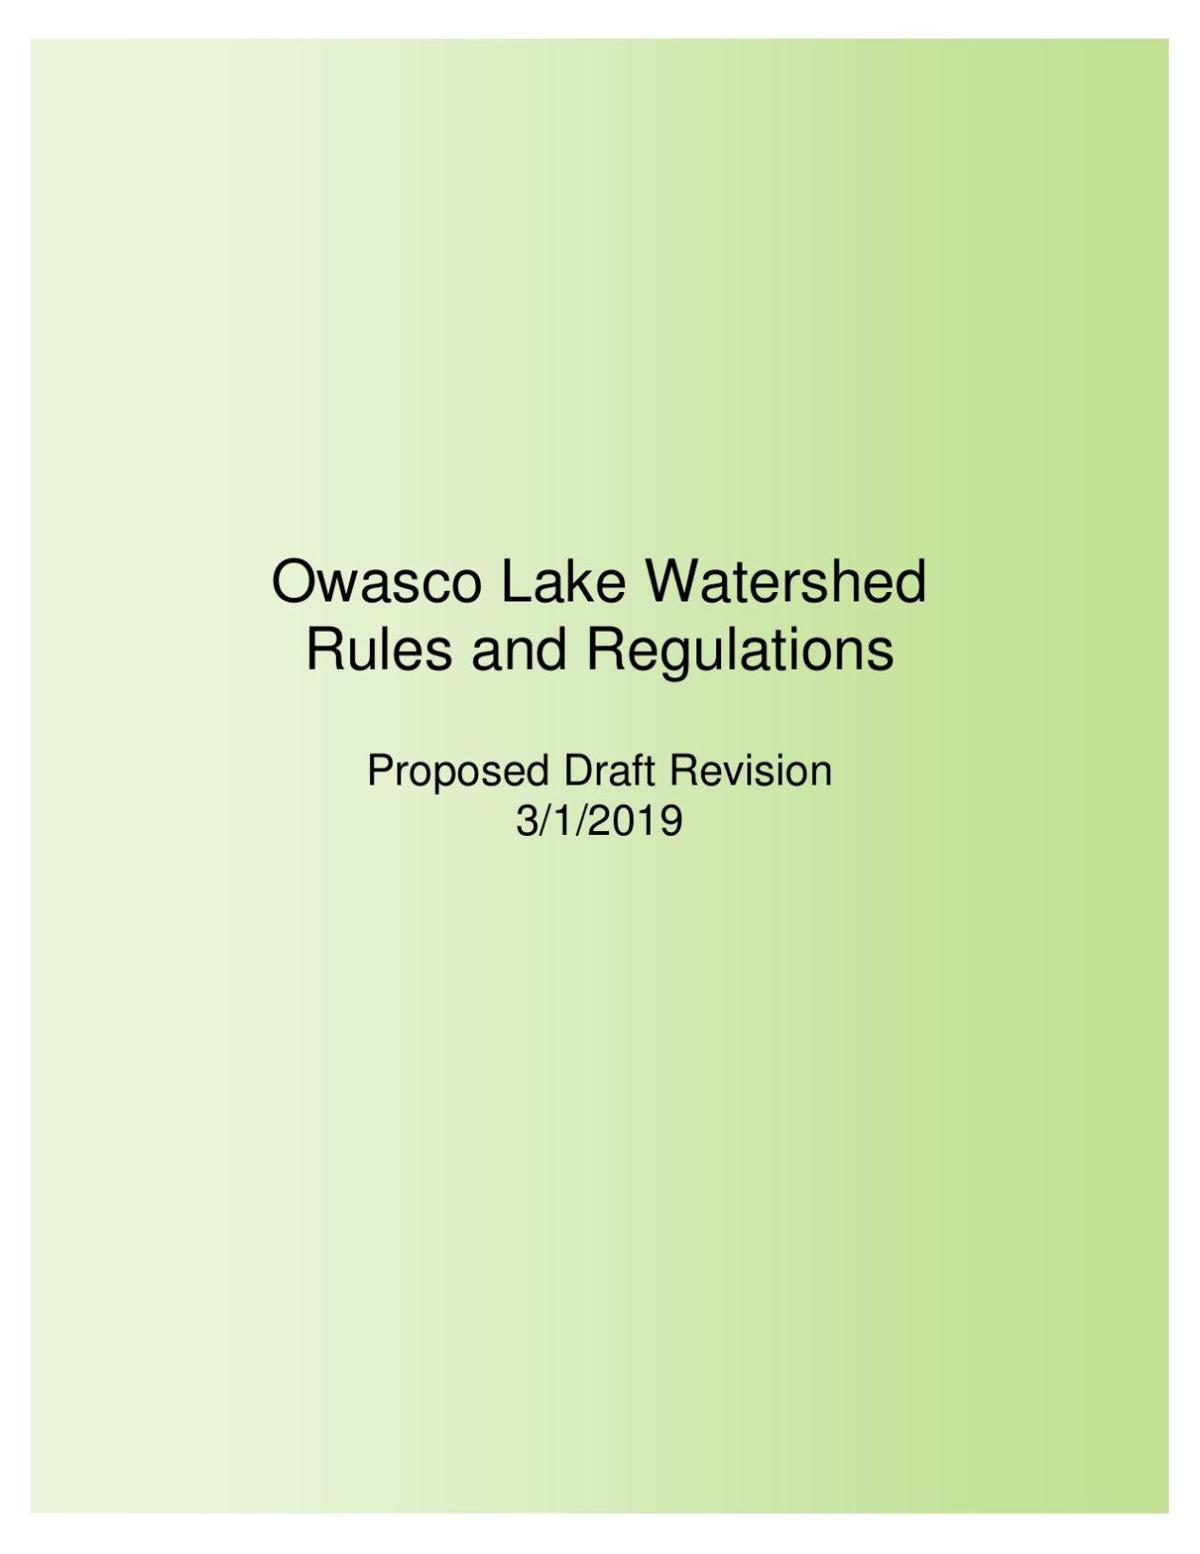 Owasco Lake Watershed Rules and Regulations